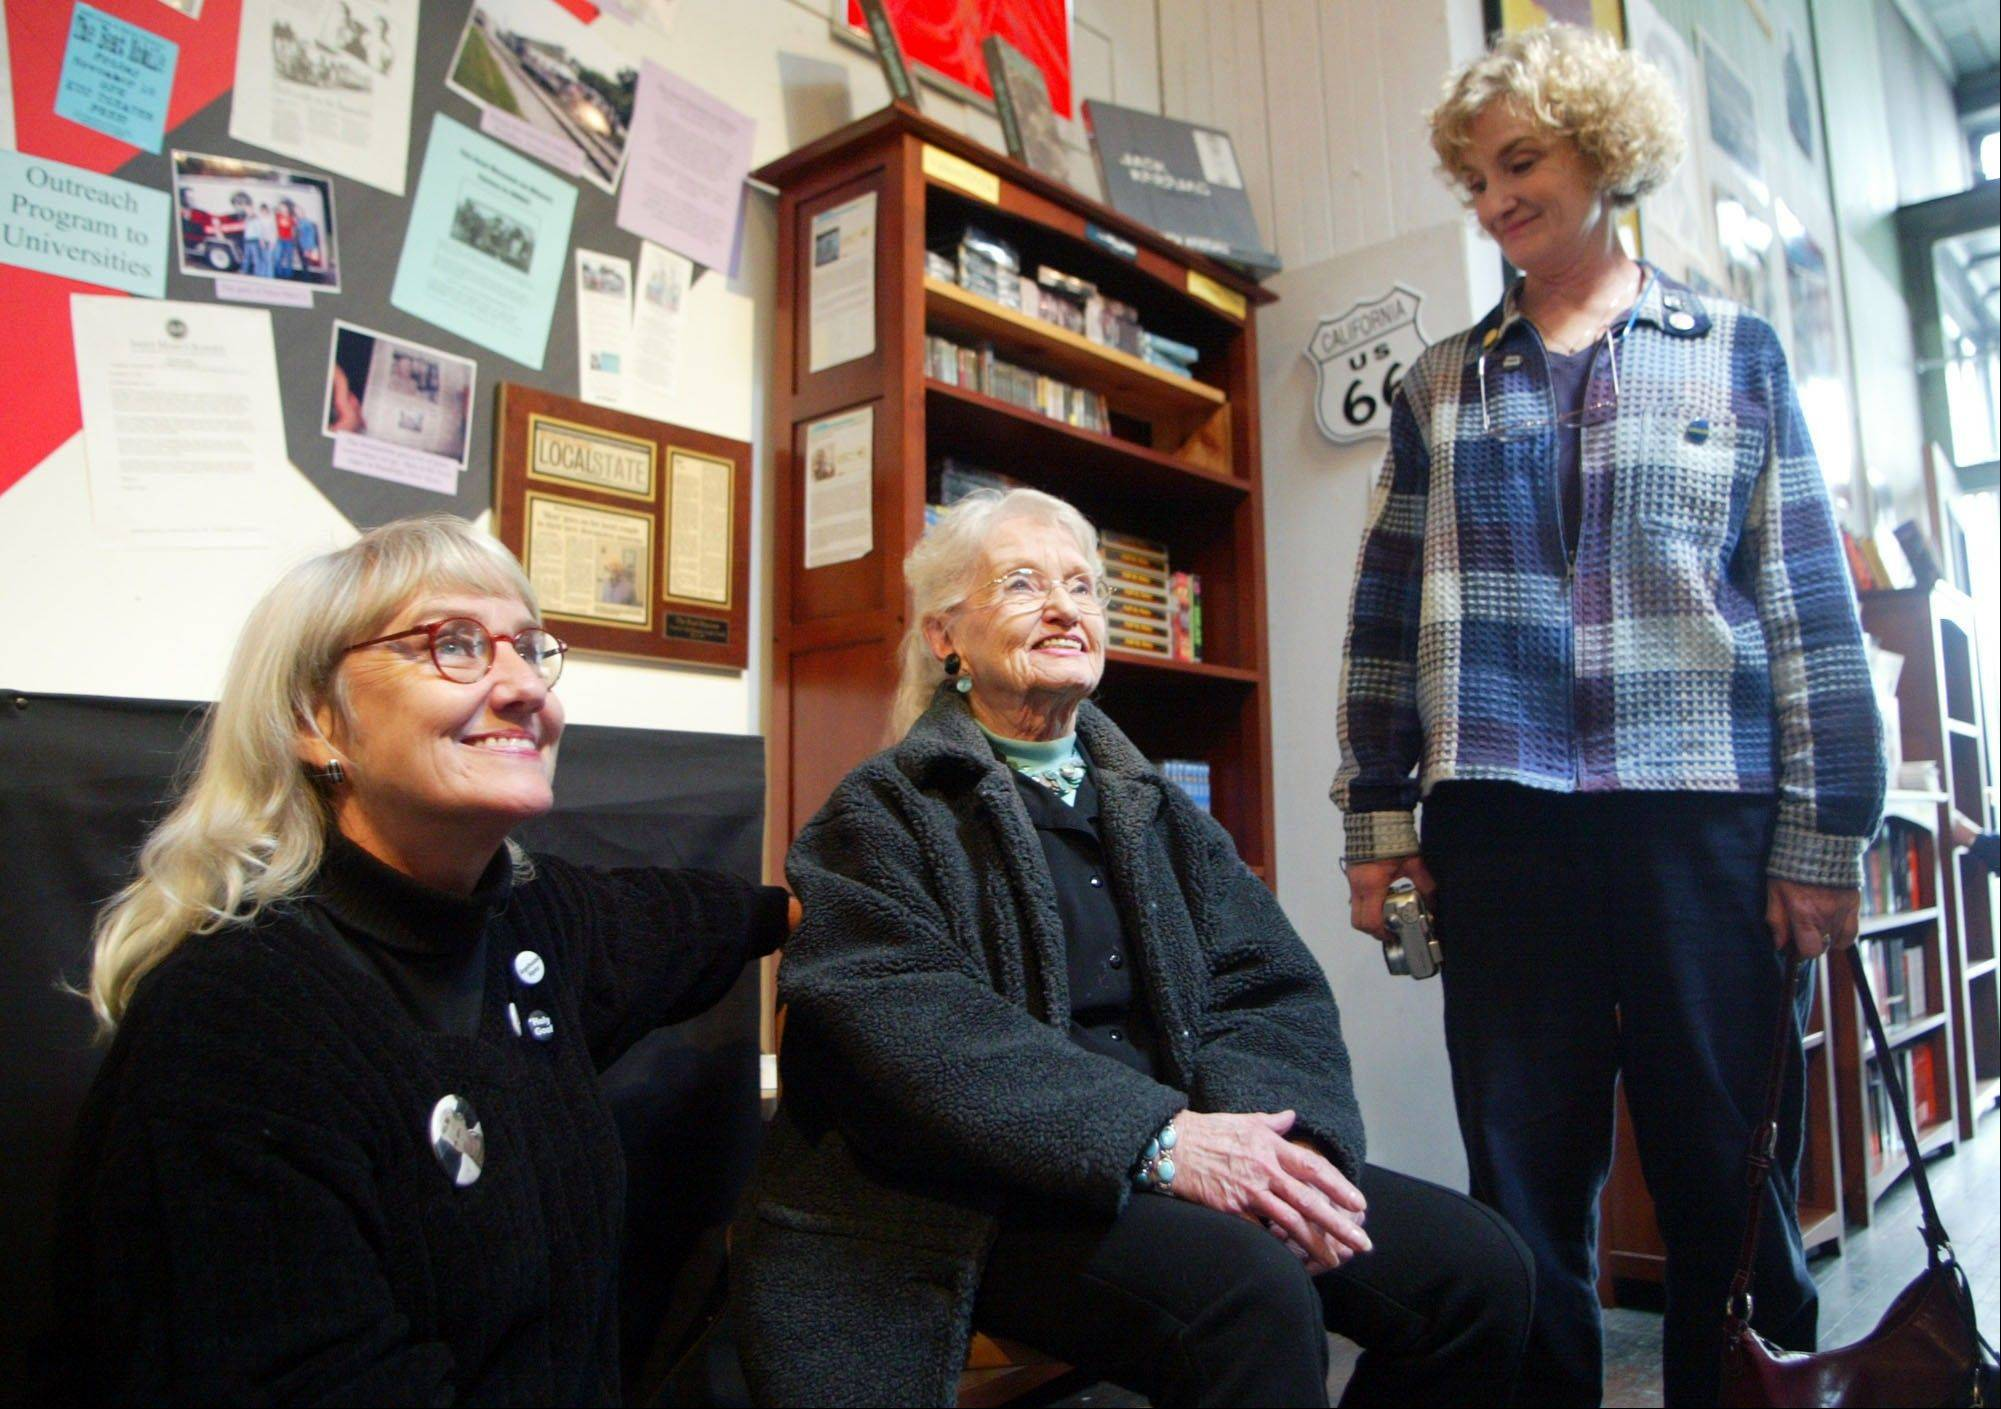 Beat writer Neal Cassady�s daughter, Jami Cassady, left, his wife, Carolyn Cassady, center, and daughter, Cathy Cassady, smile while visiting �The Beat Museum,� in the North Beach district of San Francisco.